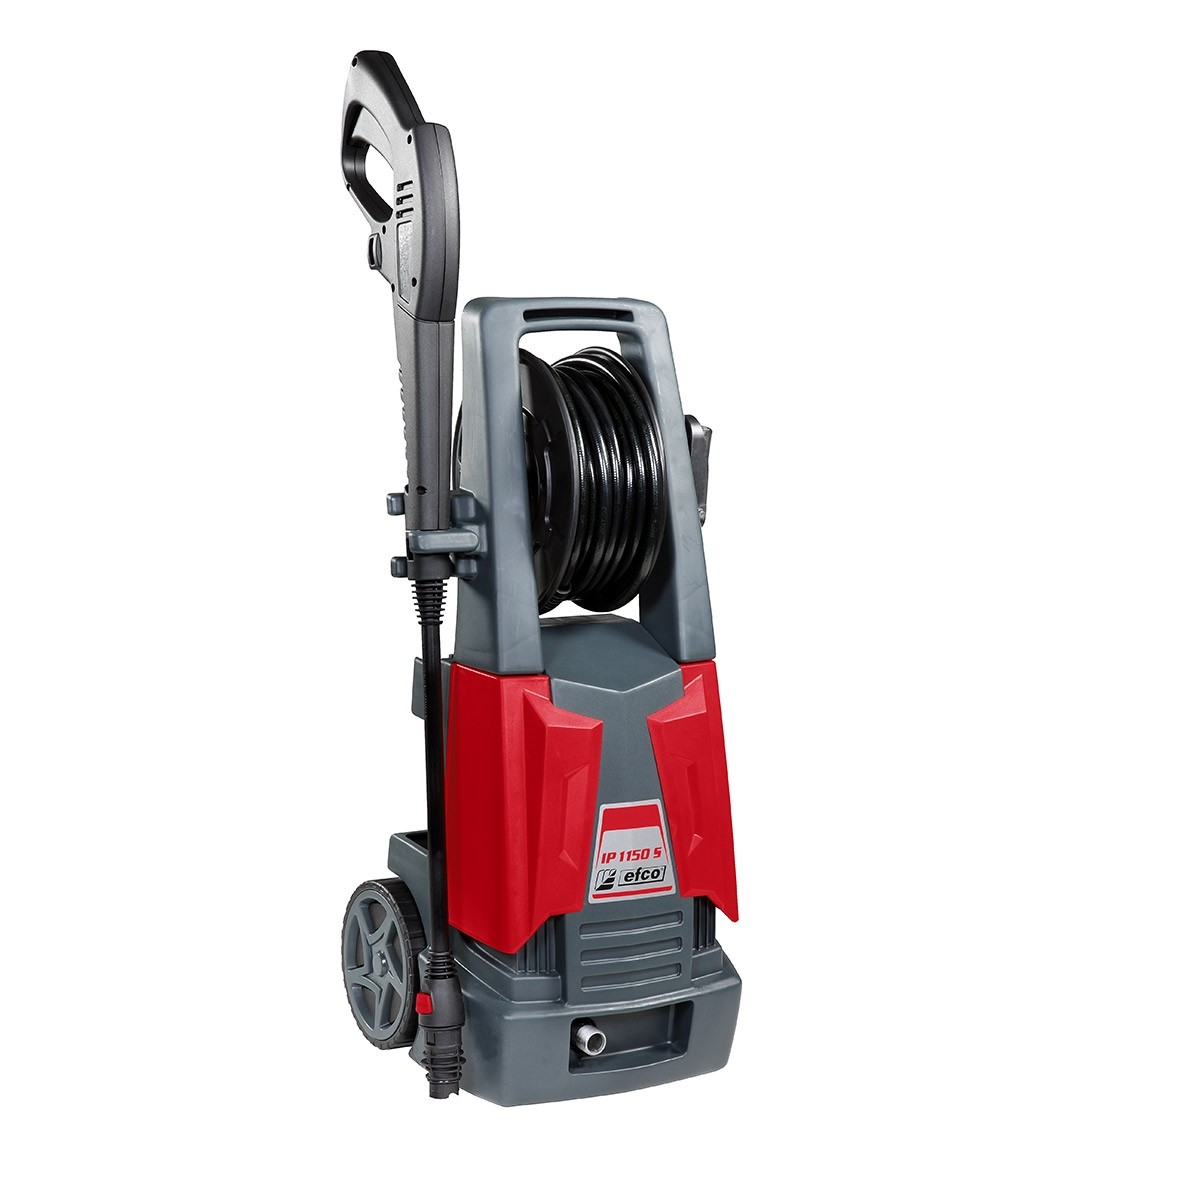 Efco IP 1150 S Electric Cold water high-pressure washers Jet Wash